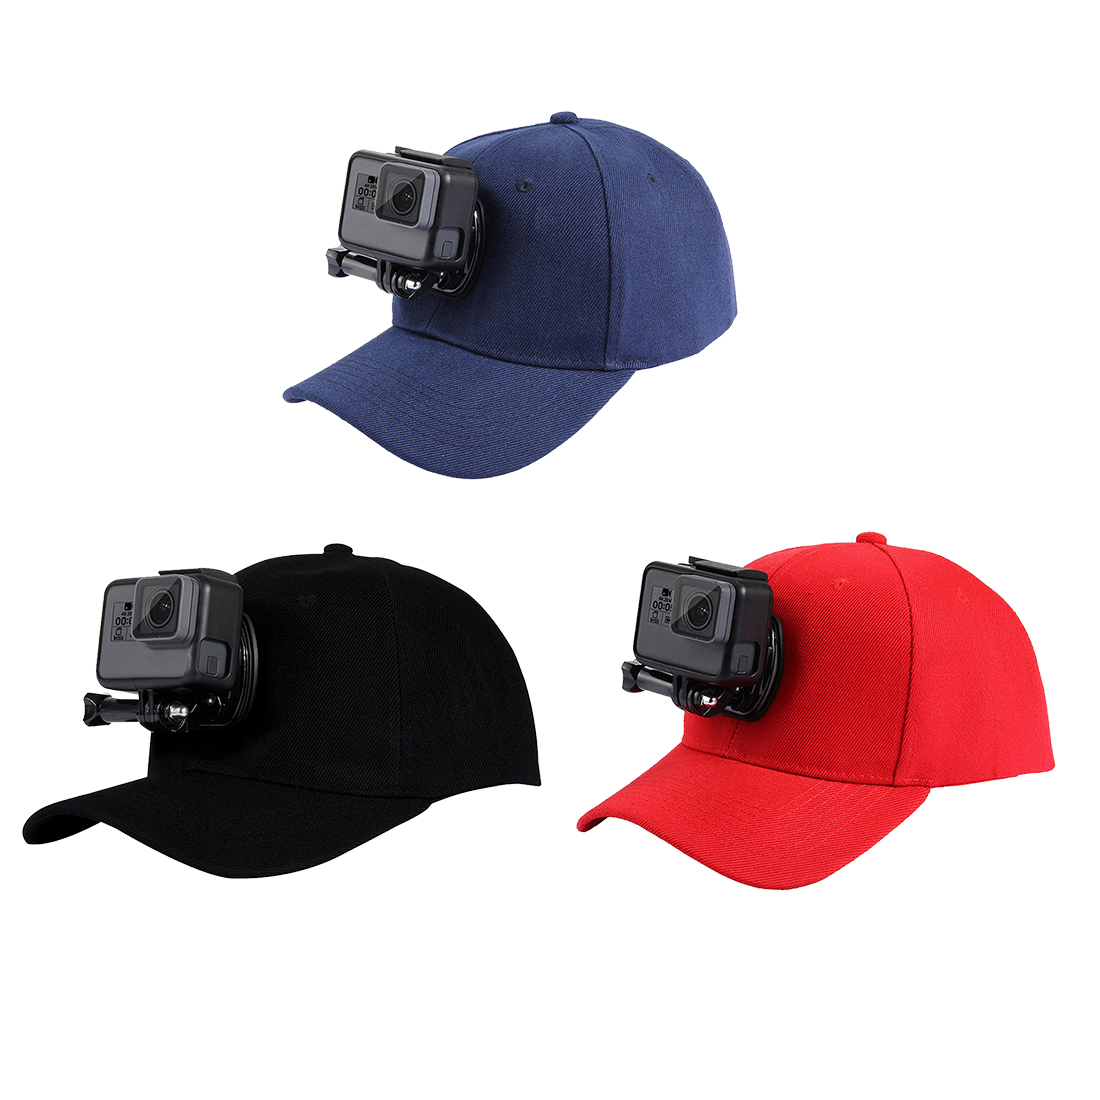 For Gopro Accessory Adjustable Canvas Sun Hat Cap for Hero 5 4 3 SJCAM SJ7 SJ6 M20 Eken H9 H9R H8 Pro Yi 4K Sport Action Camera for gopro 6 hero5 4 3 outdoor action camera accessories for sj4000 sj5000 sj5000x sj6 legend sjcam m20 4k m10 wifi xiao mi yi 4k